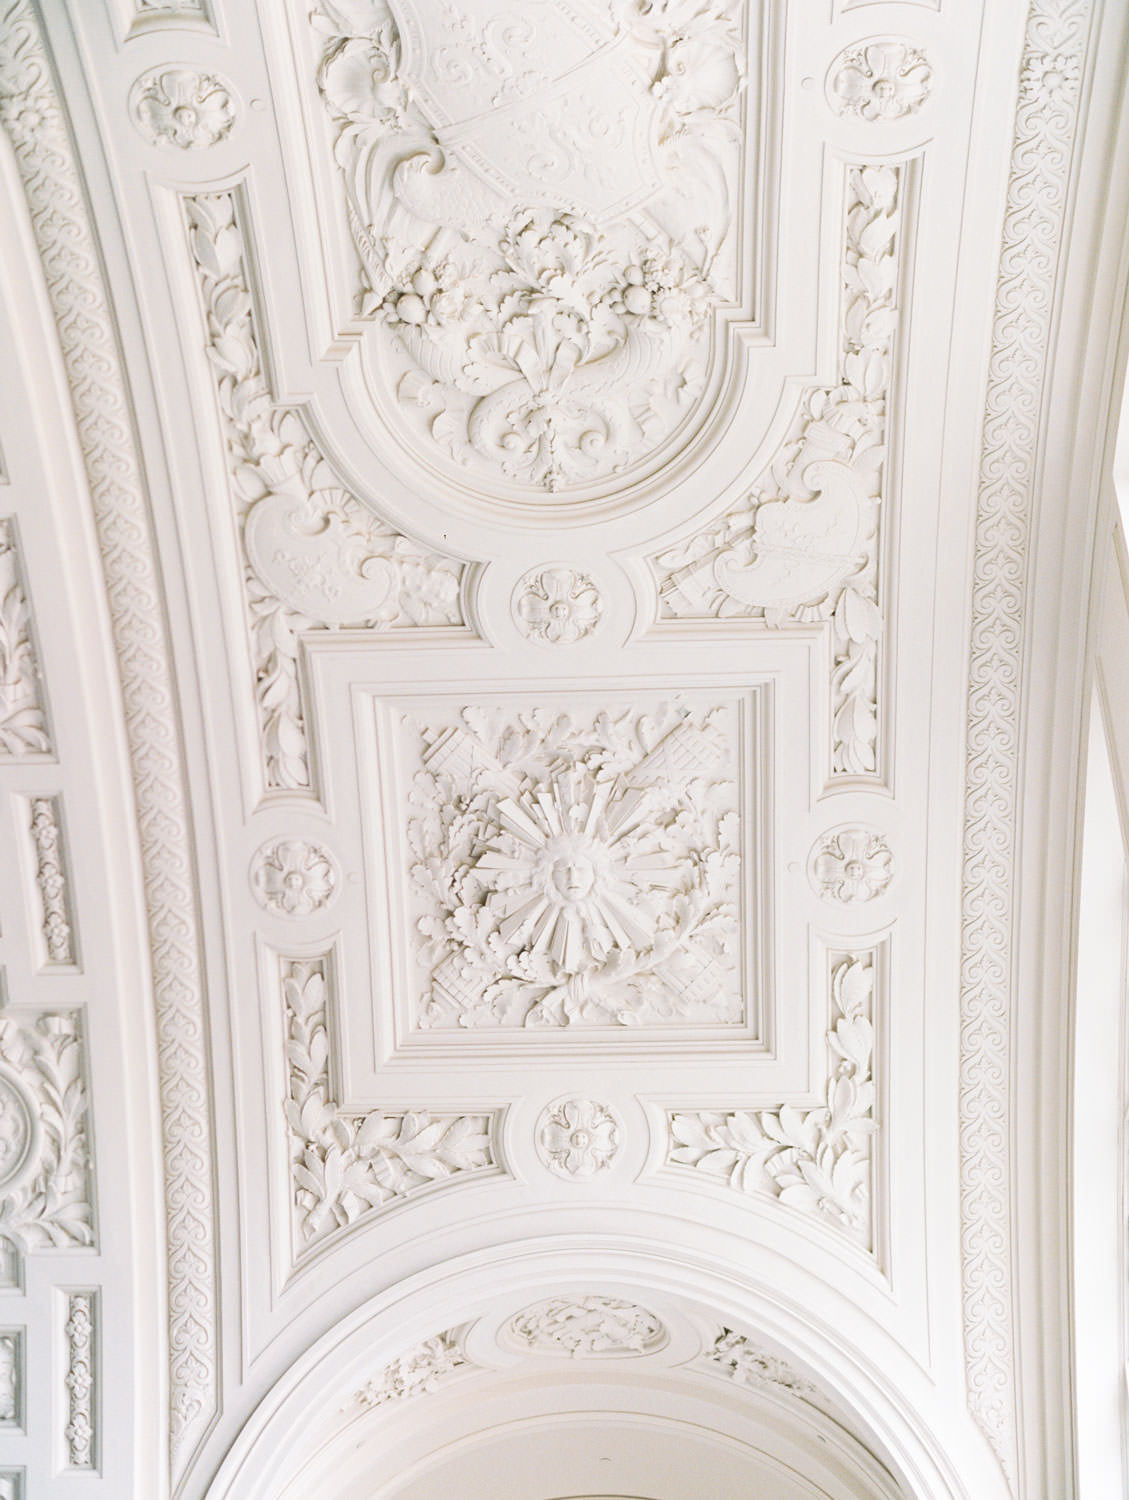 Ceiling architecture. Engagement Photos on film at San Francisco City Hall by Cavin Elizabeth